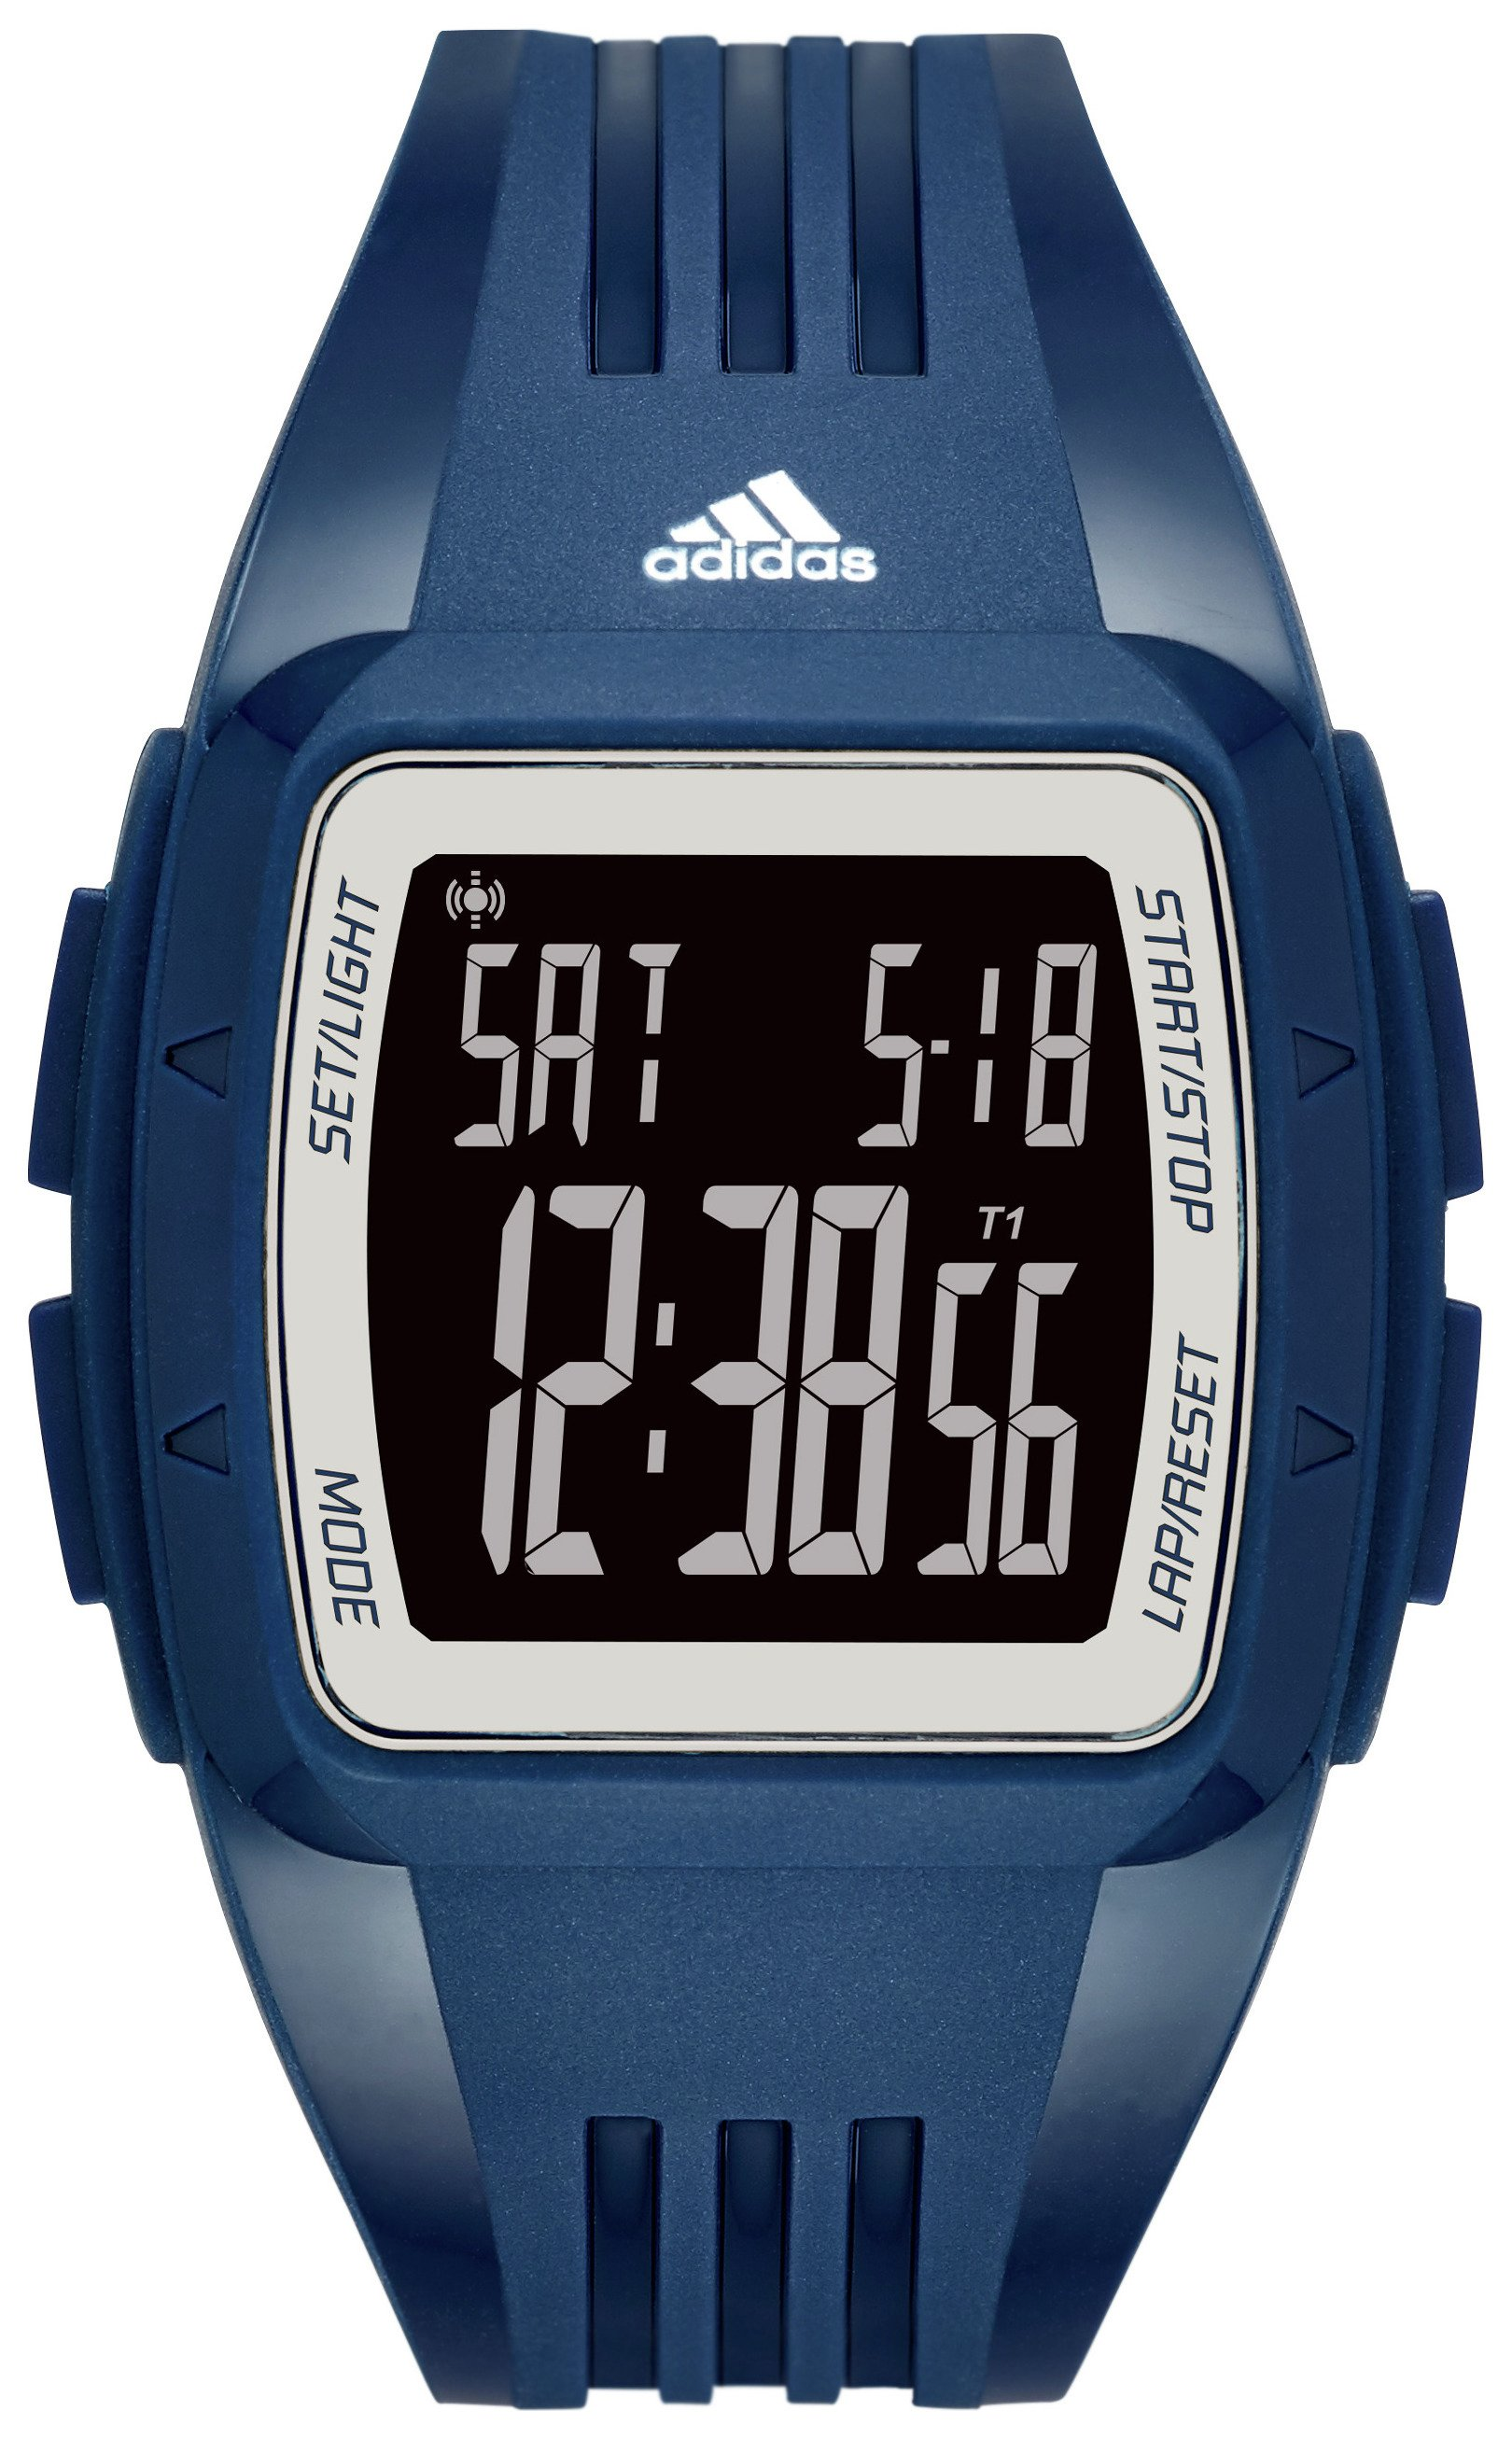 Image of Adidas Duramo Unisex ADP3268 Night Marine Blue Strap Watch